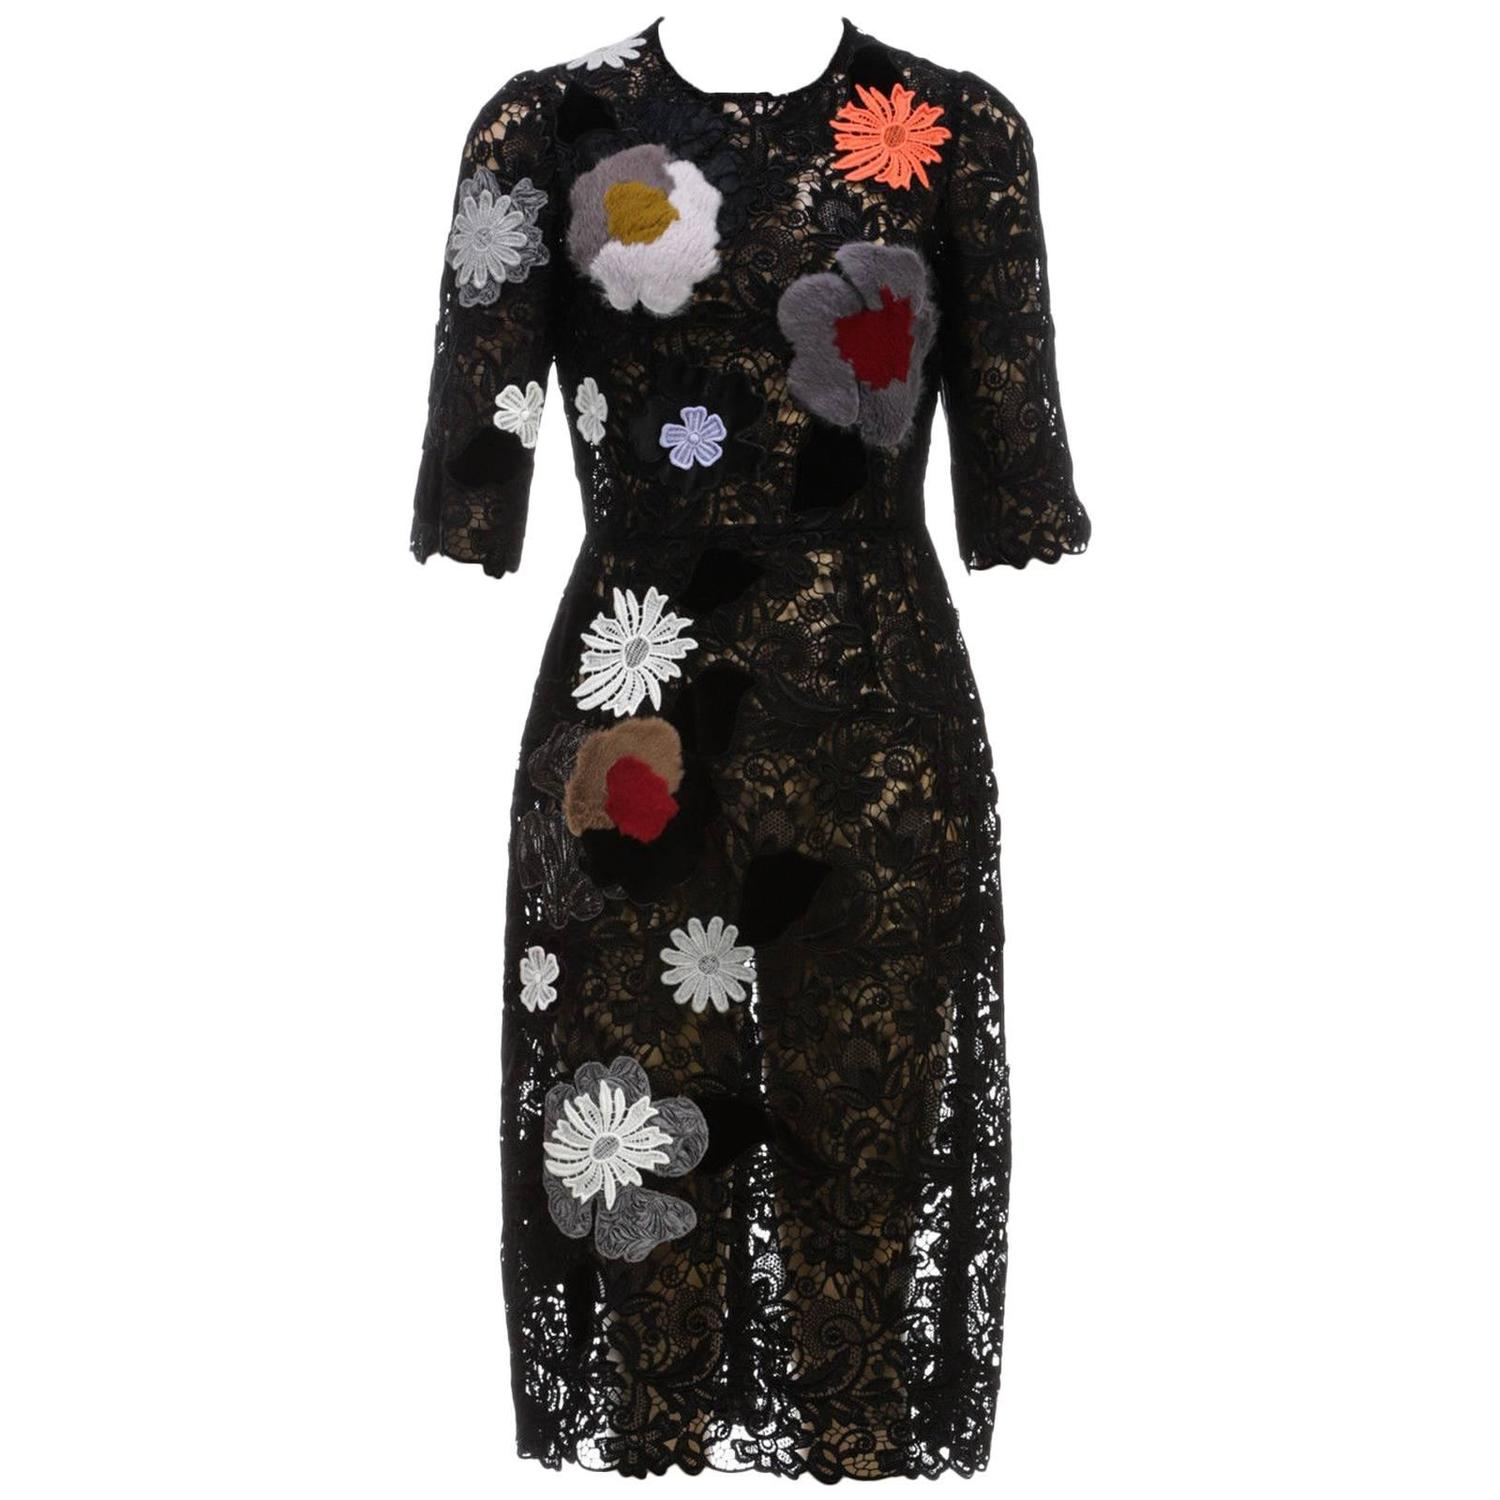 19366832033 Dolce And Gabbana Dress Size 40